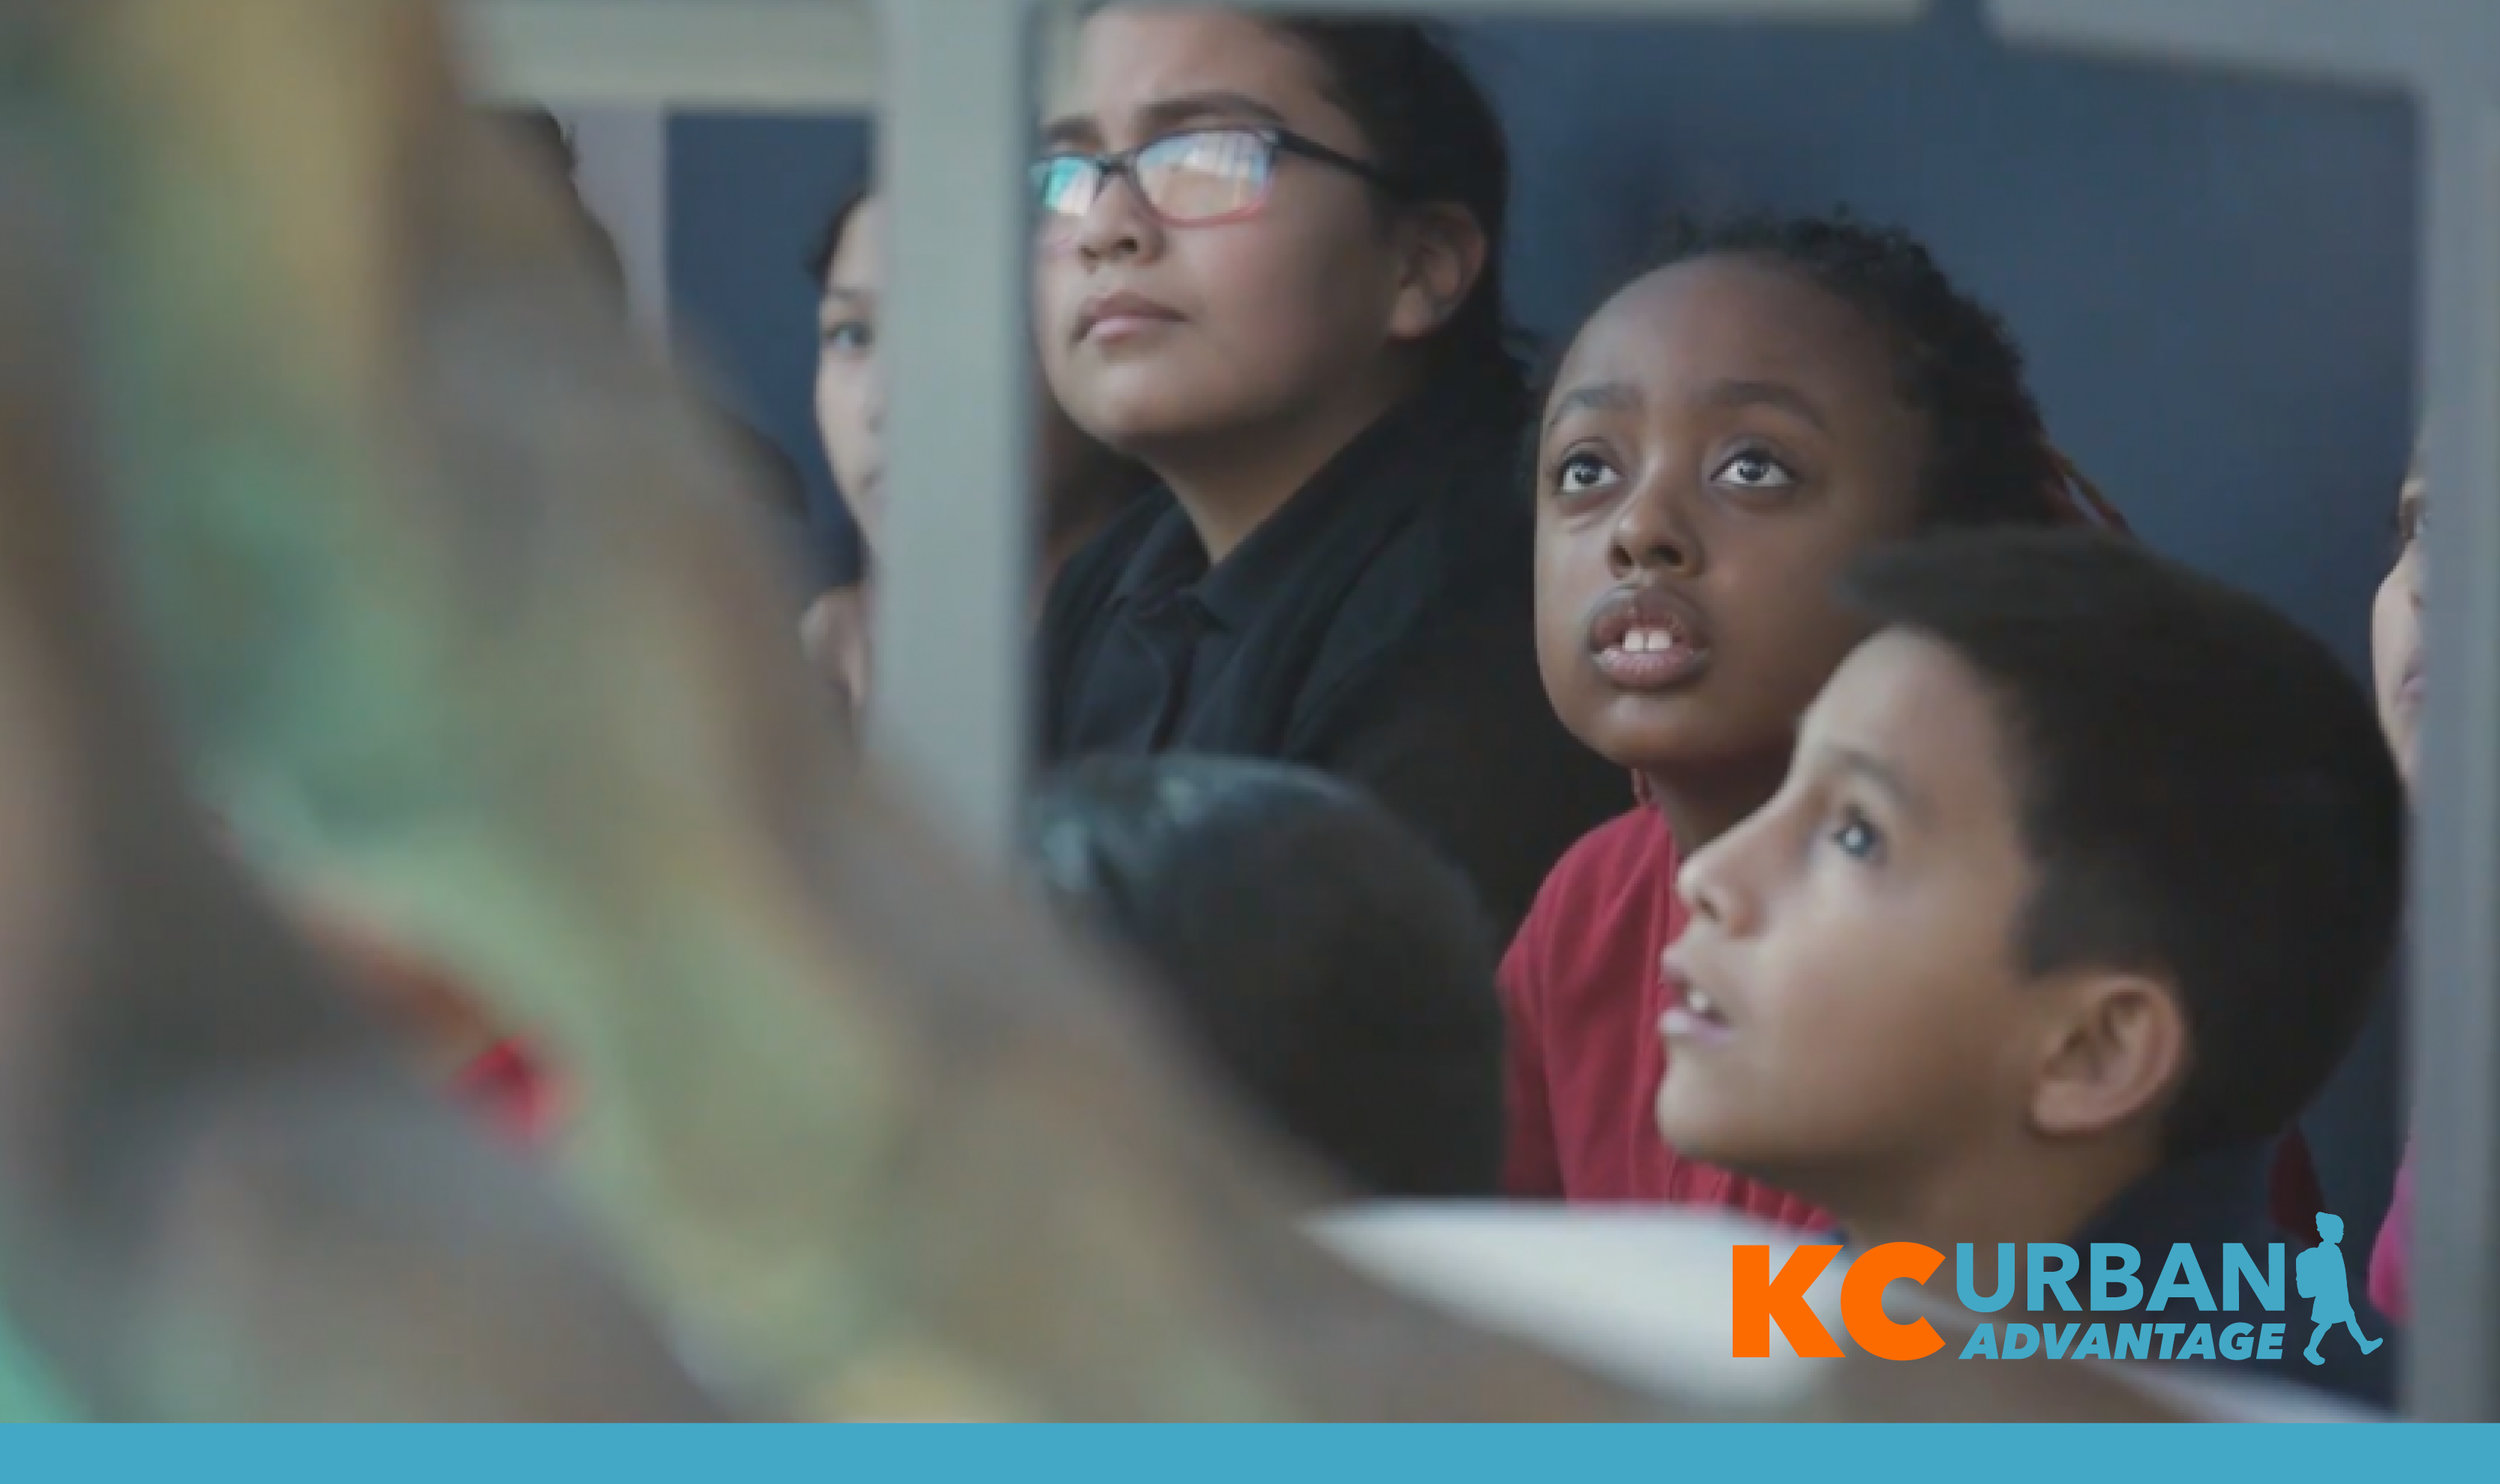 Your support counts. - Every donation supports kc urban advantage